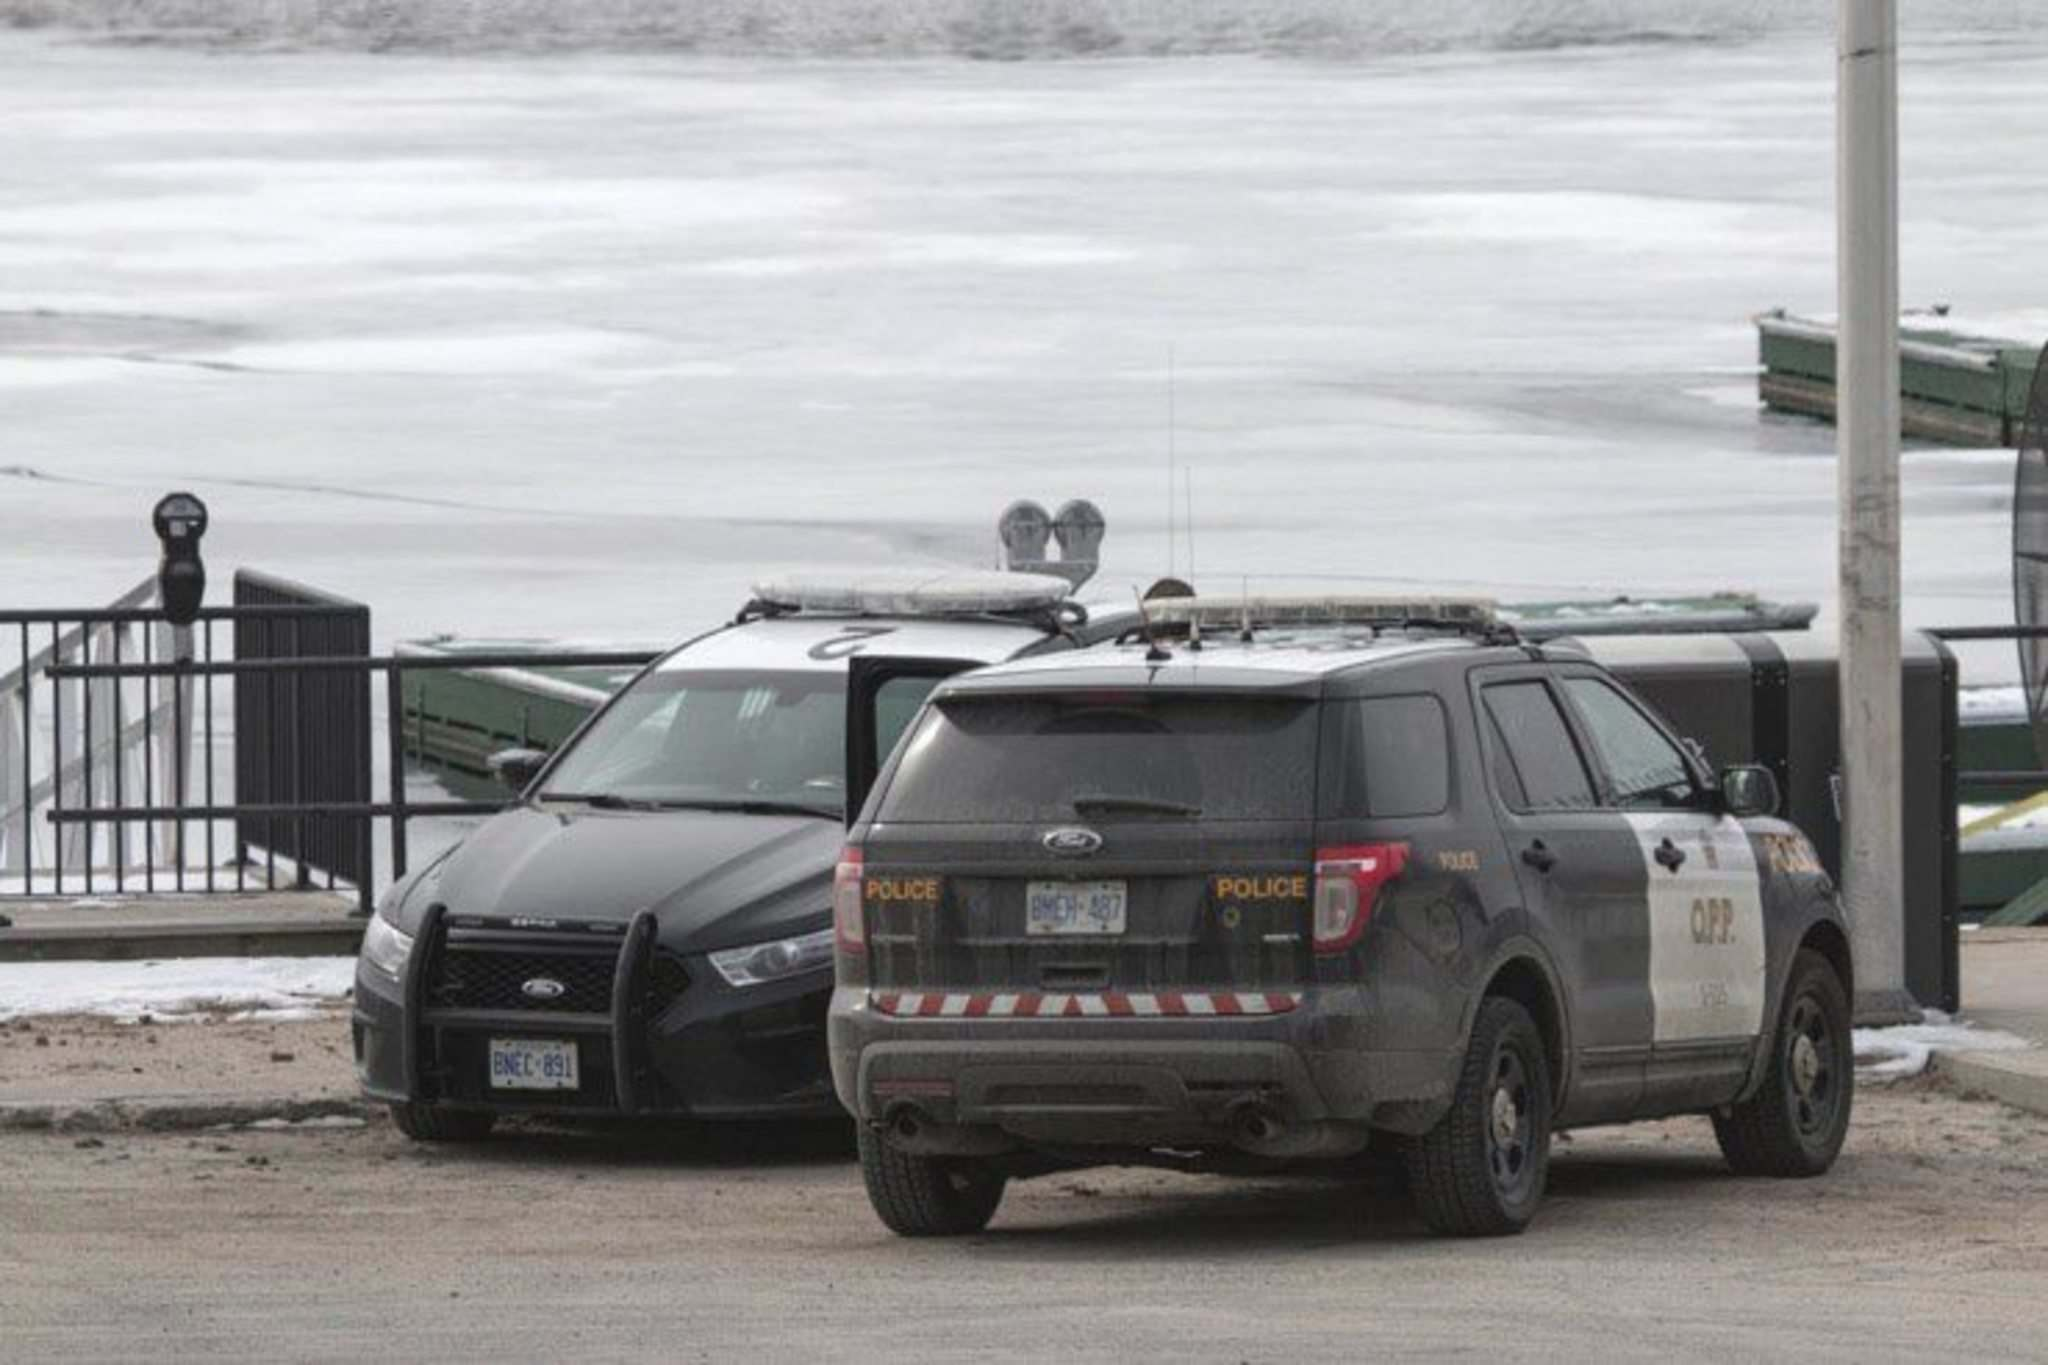 TOM THOMSON / WINNIPEG FREE PRESS</p><p>Ontario Provincial Police at scene where the remains of Delaine Copenace were found near Water Street in Kenora.</p>